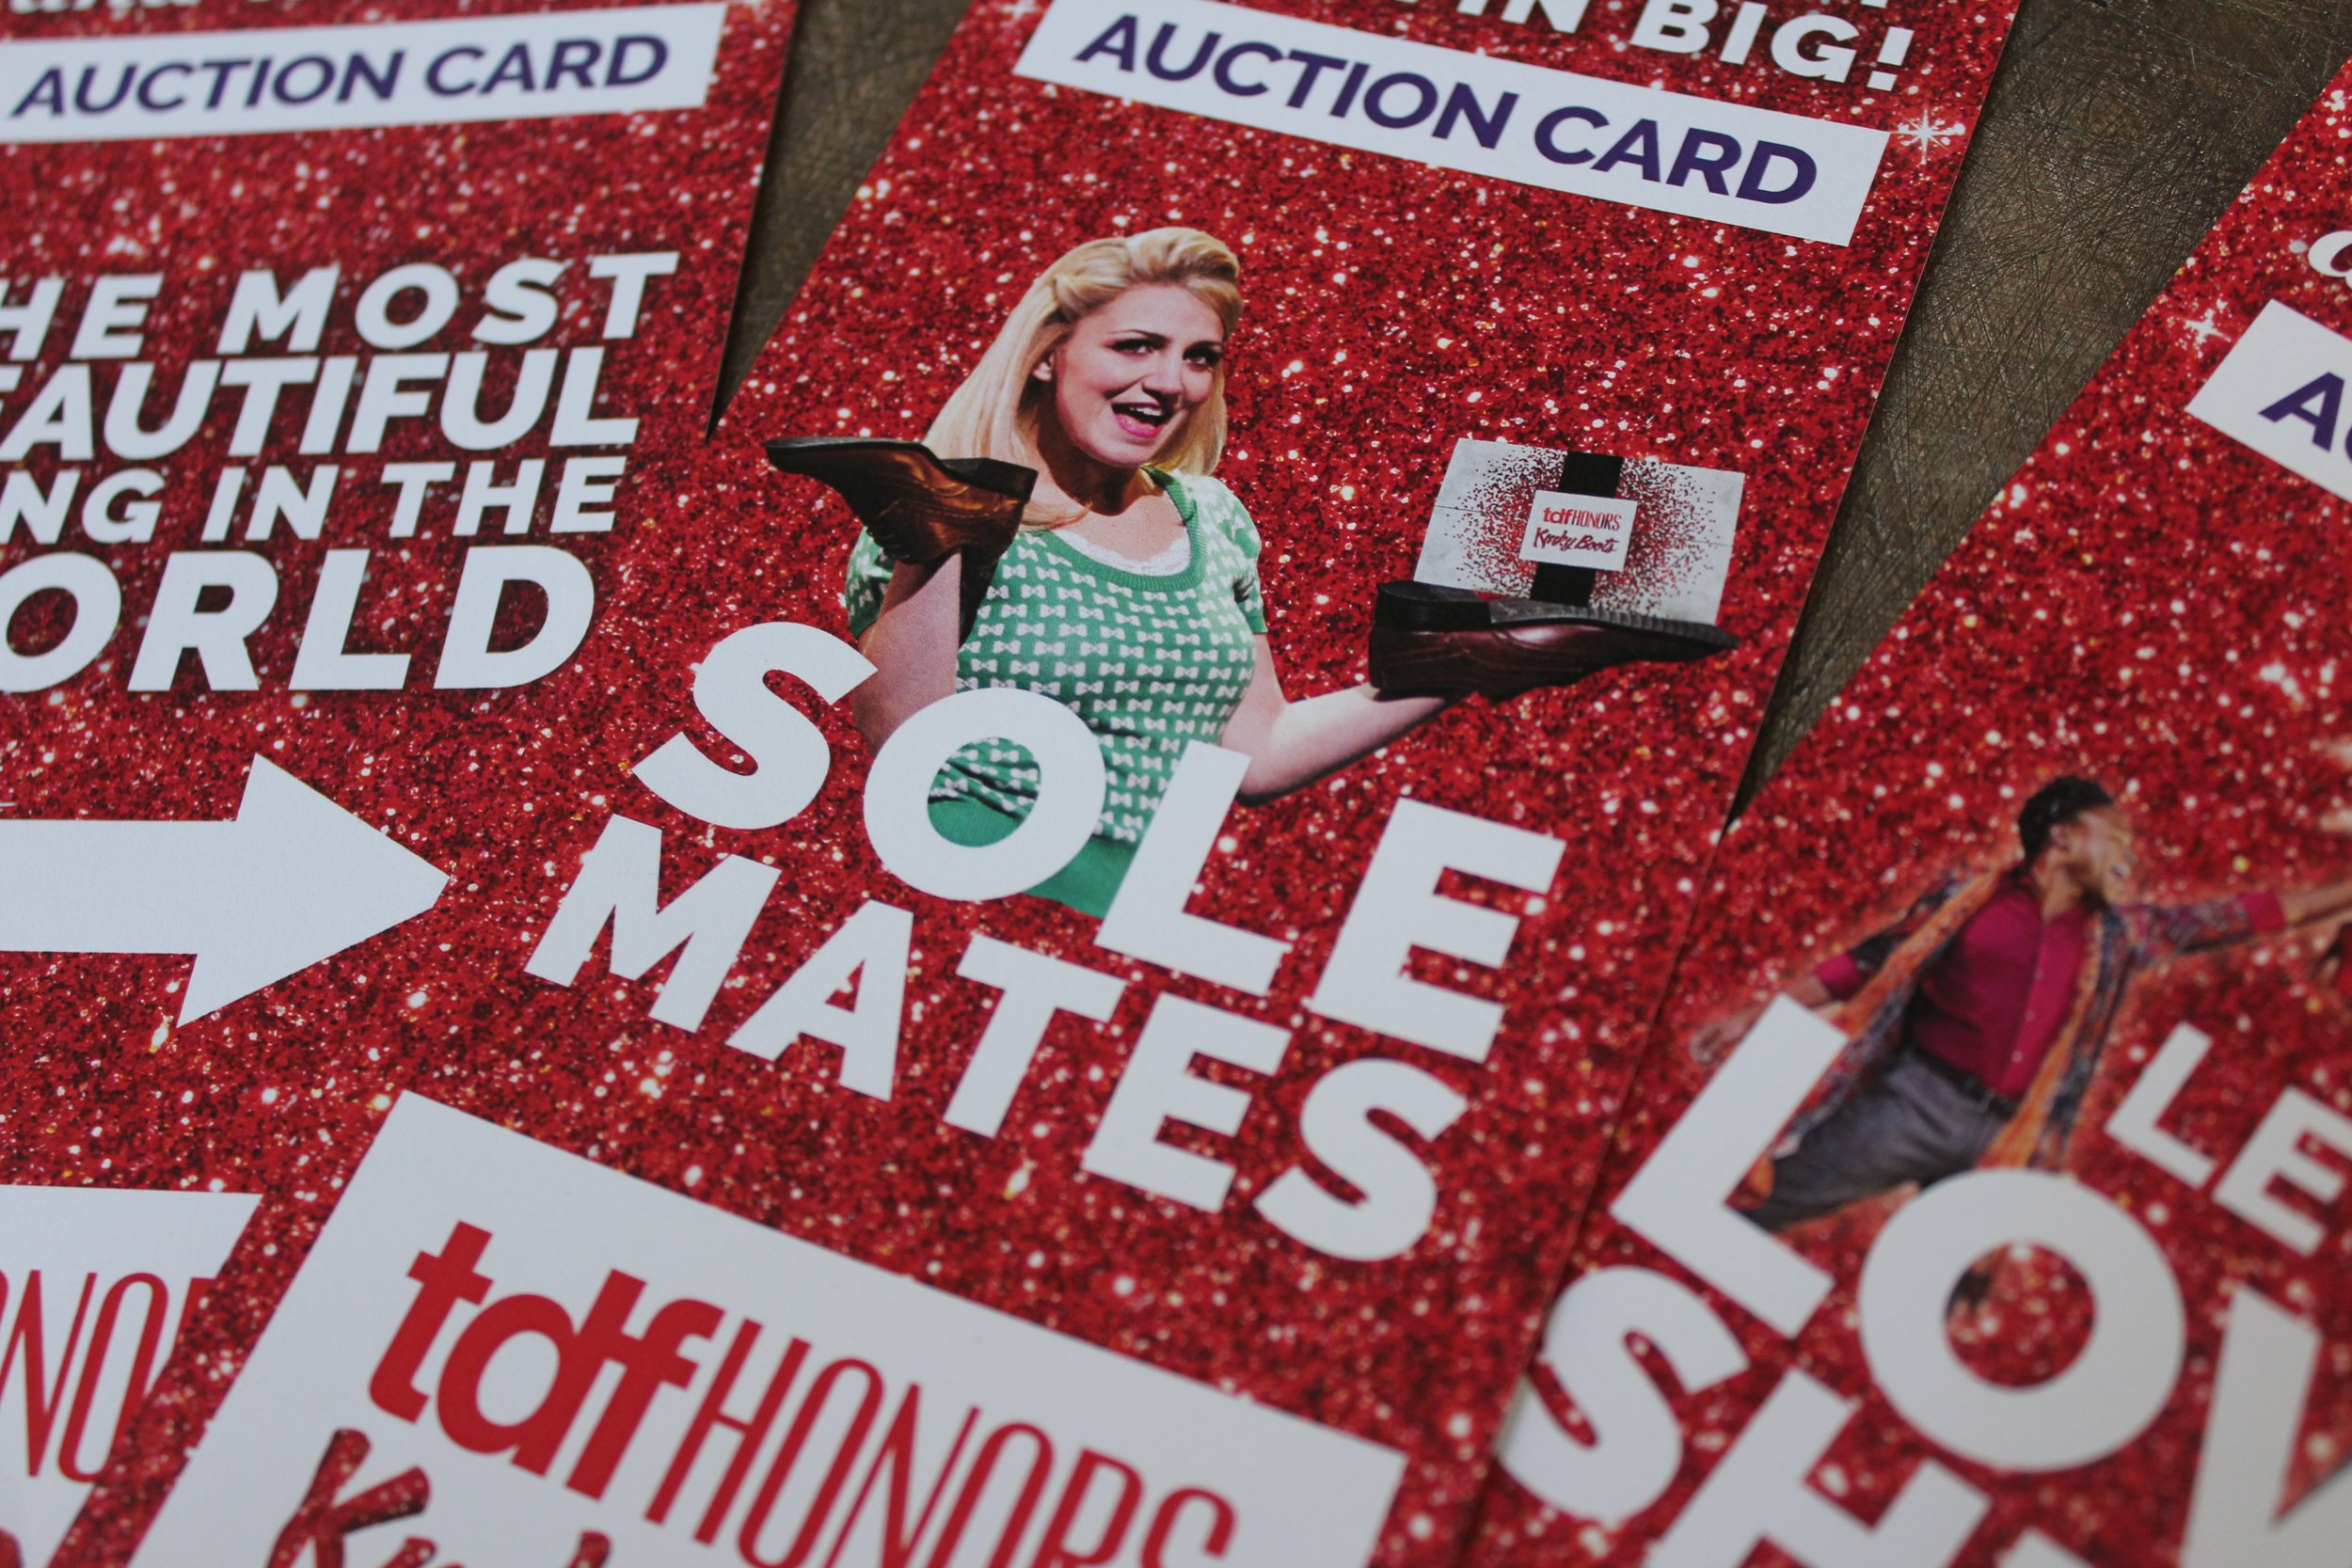 Auction Card Detail